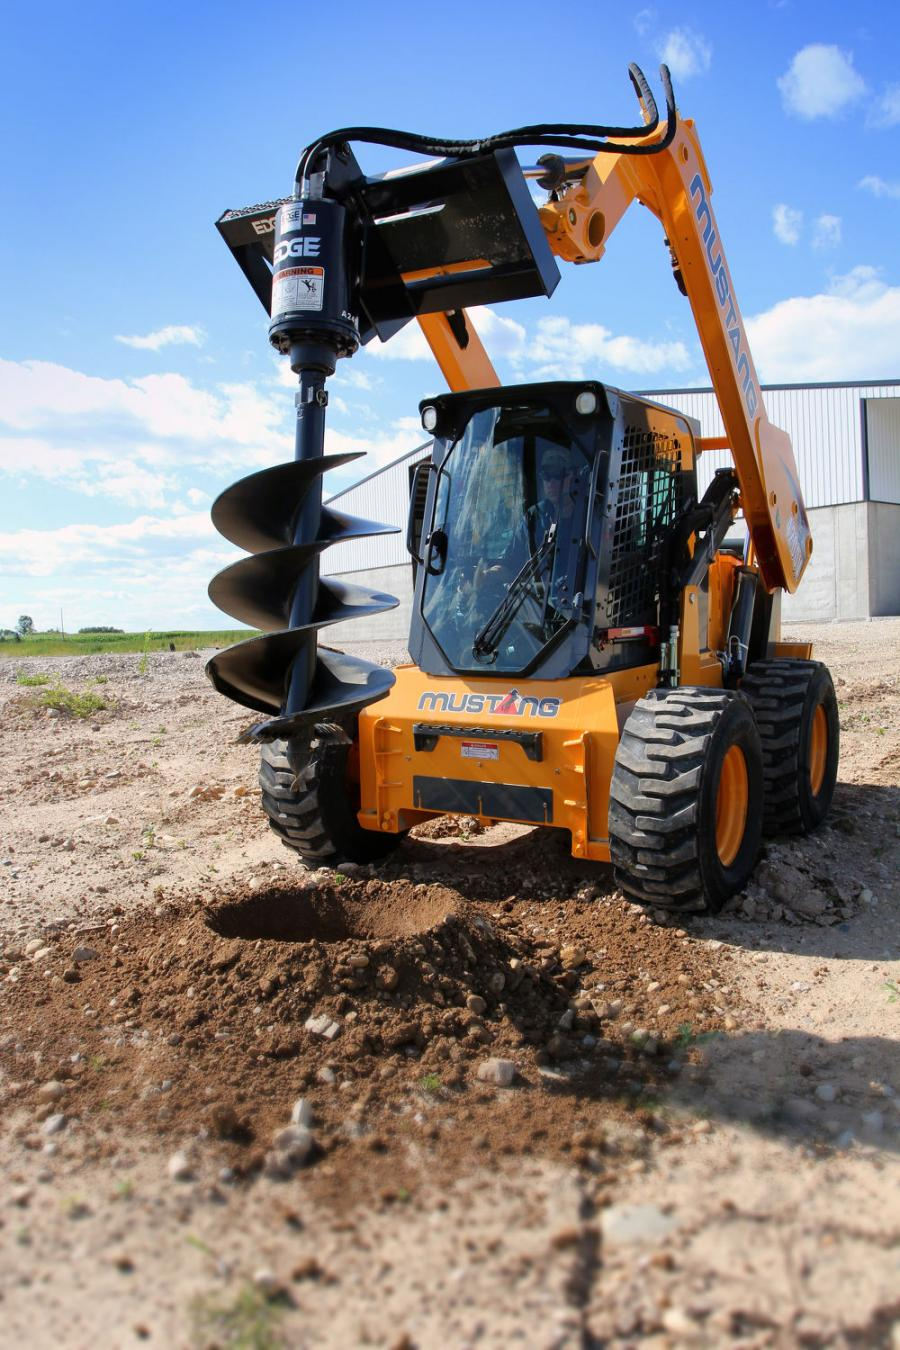 The 4200V skid steer is configured to be a true tool carrier — coming standard with the features needed to operate attachments such as mulching heads, cold planers, rock wheels and many more.